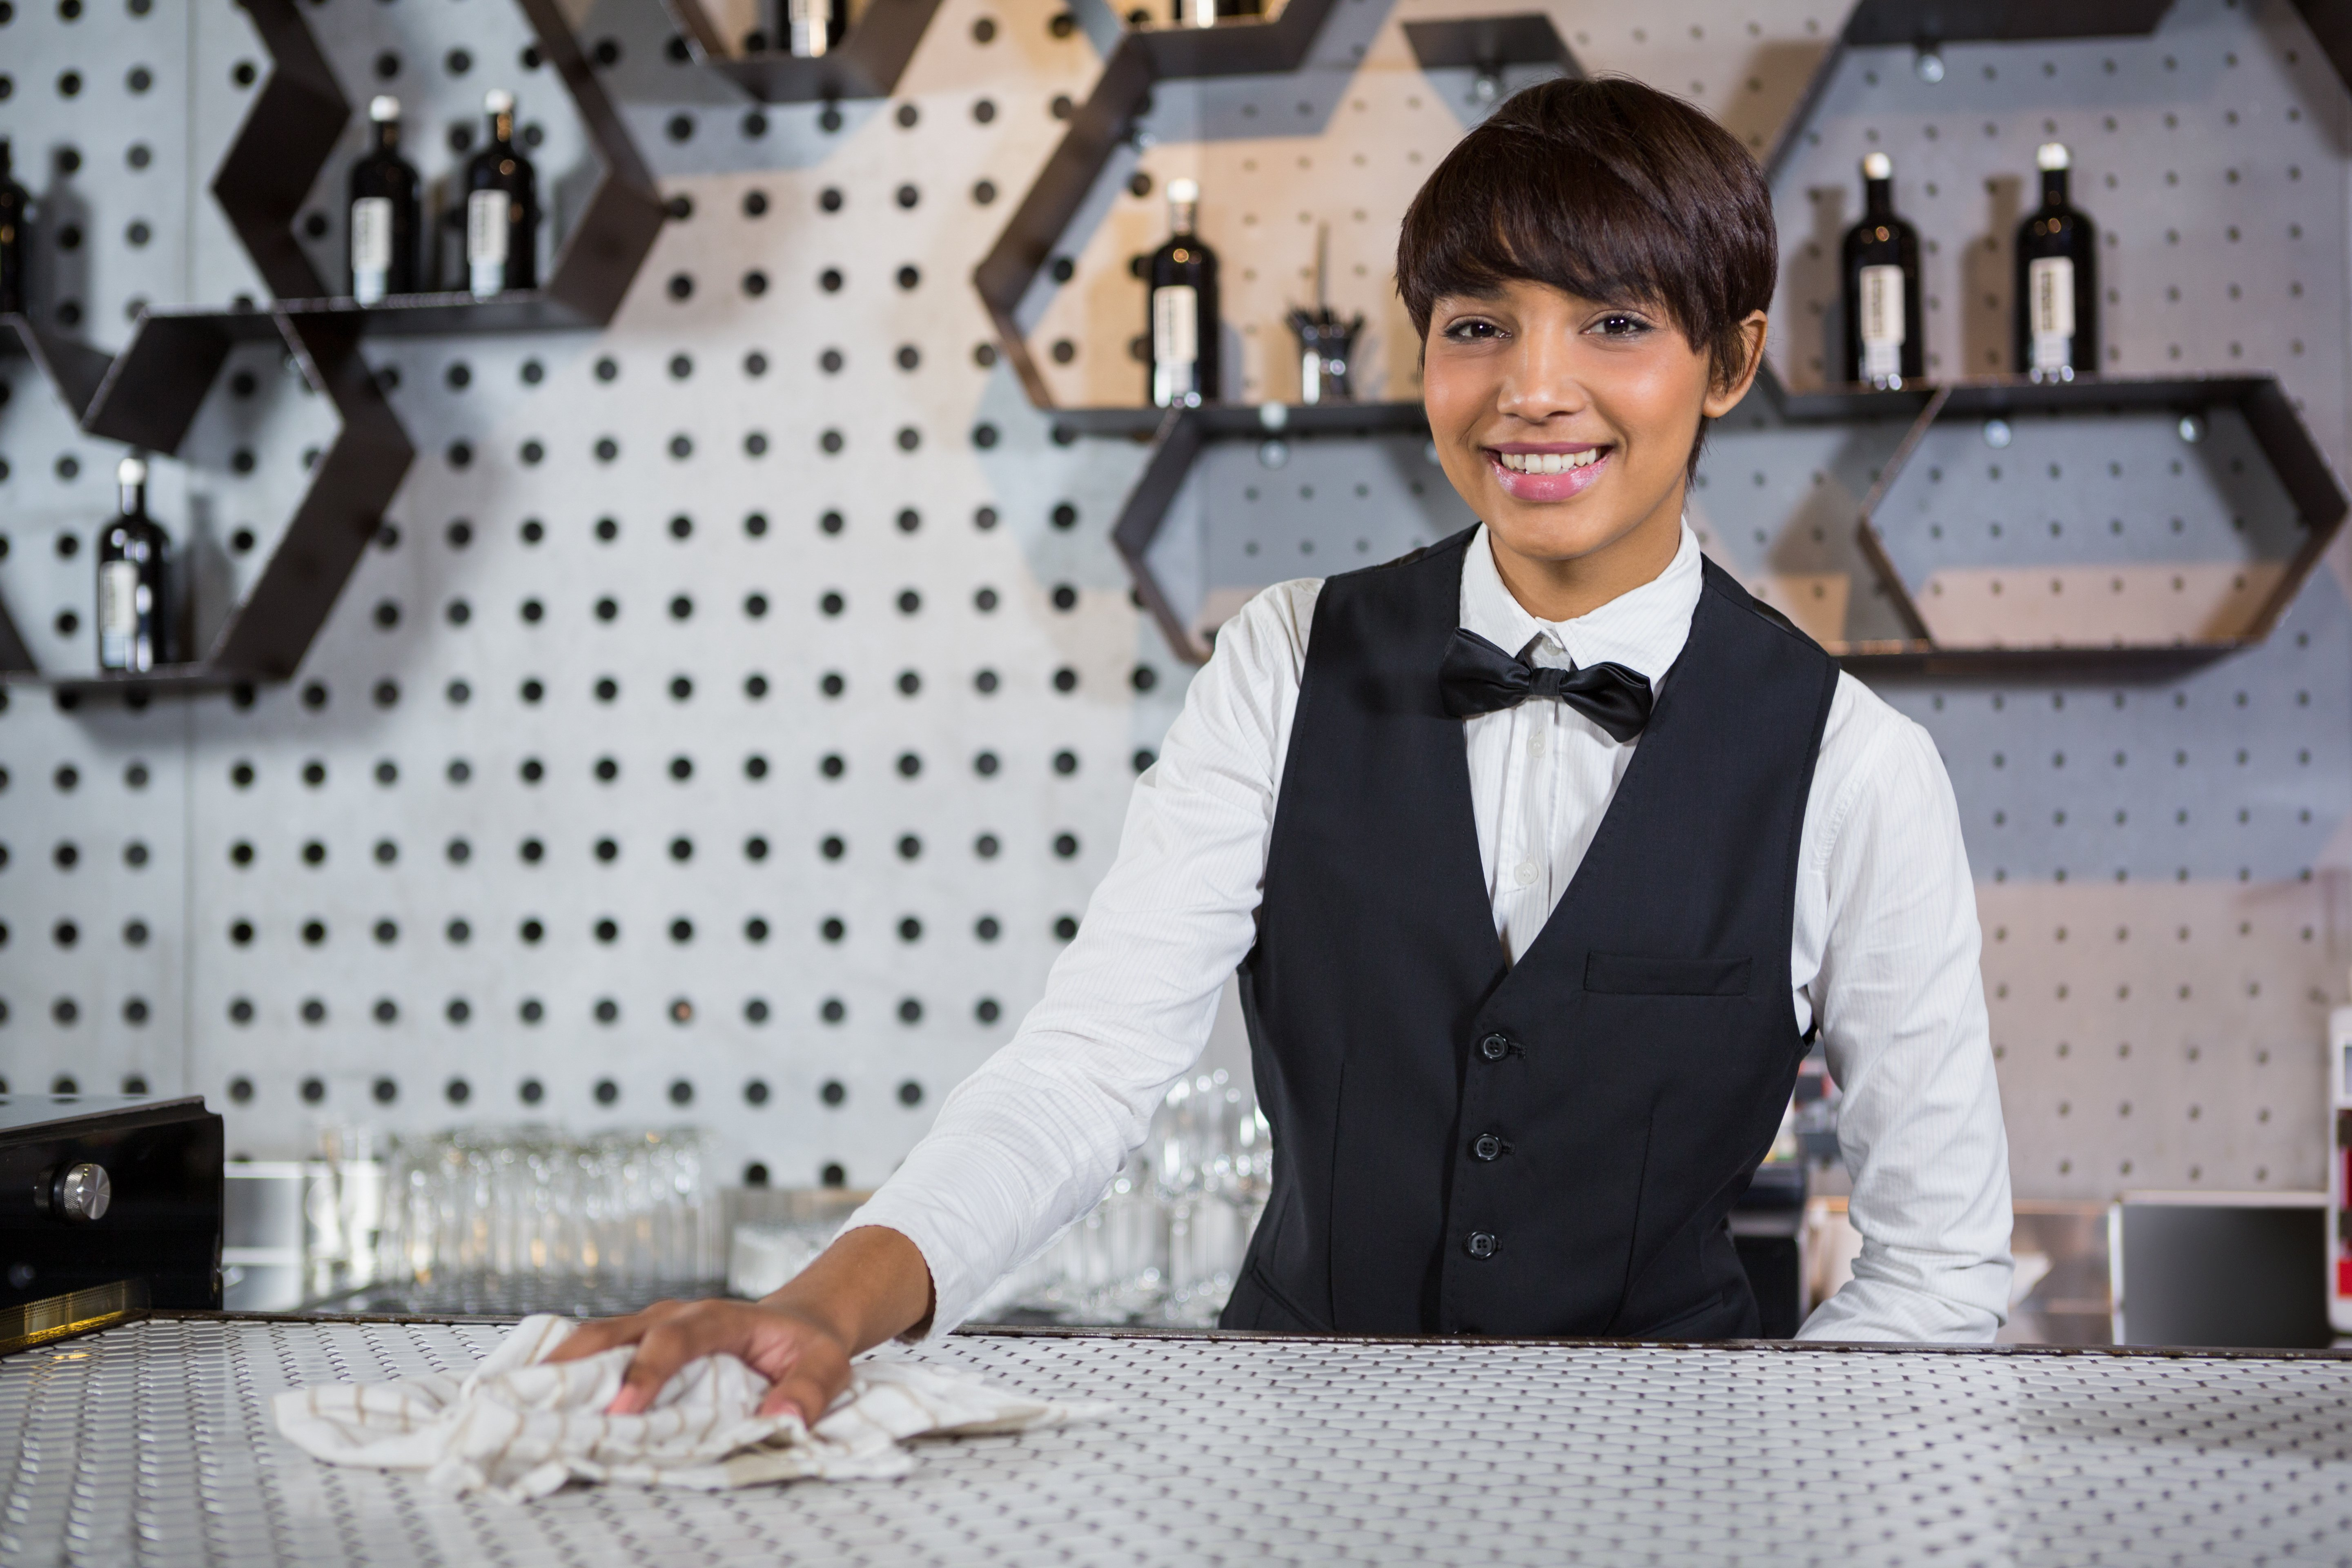 Portrait of smiling waitress cleaning bar counter in bar